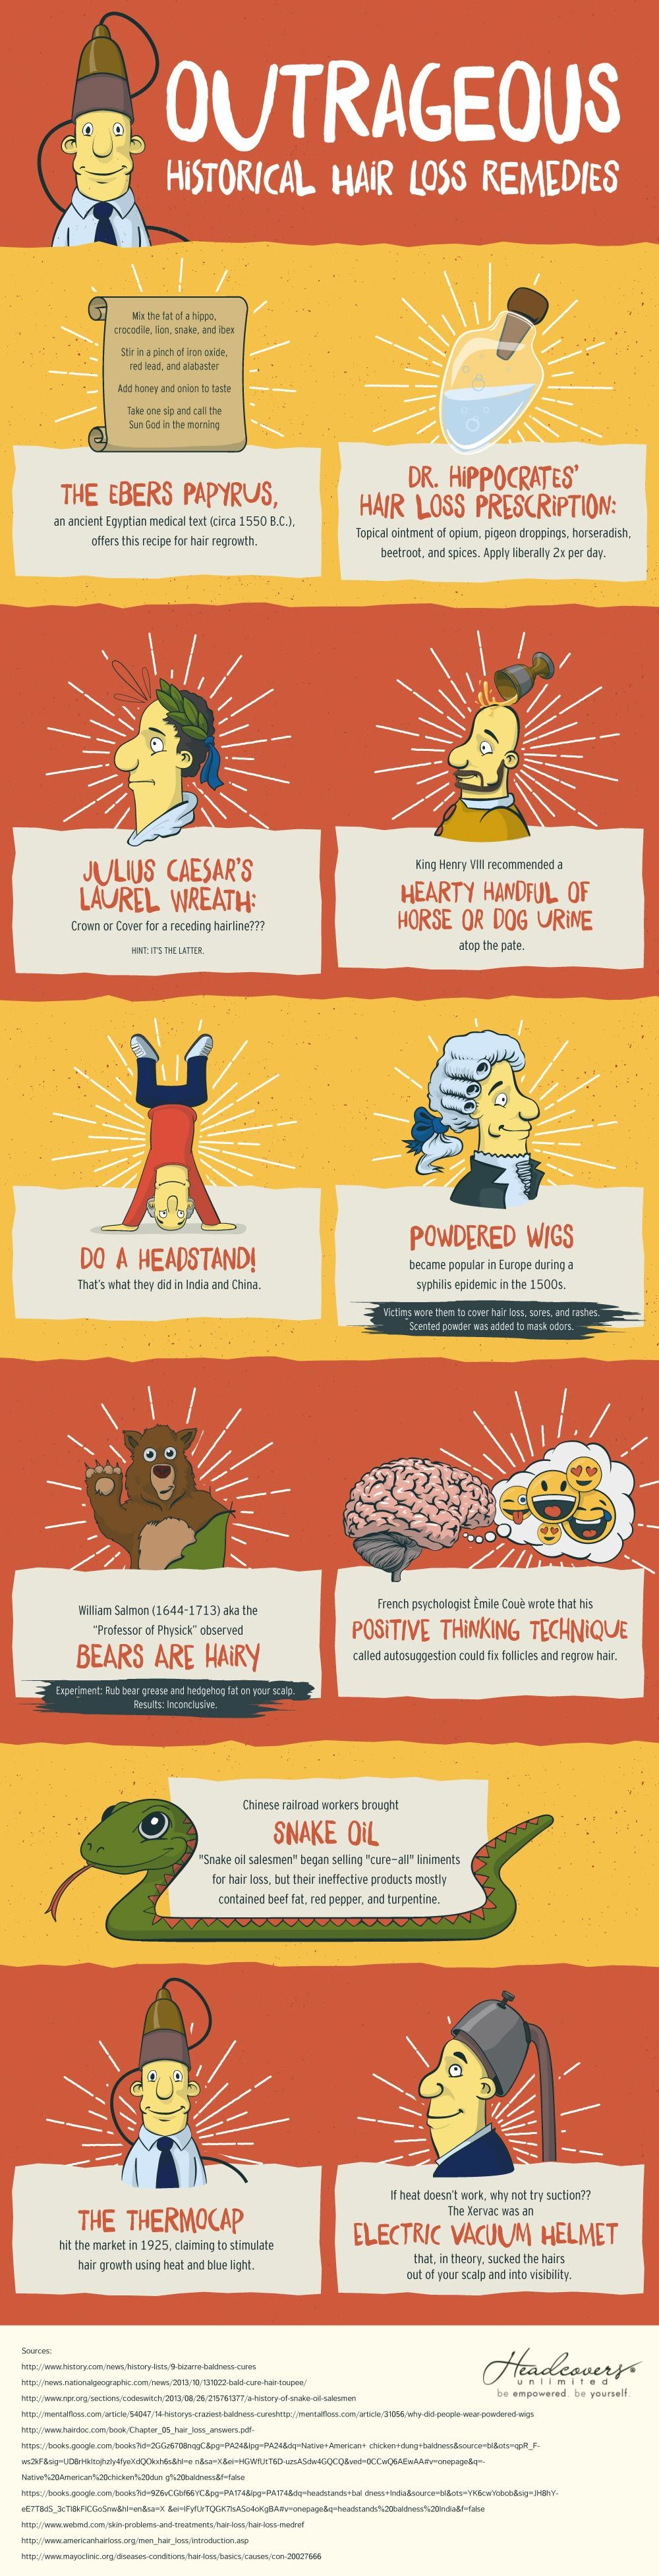 Outrageous Historical Hair Loss Remedies #infographic